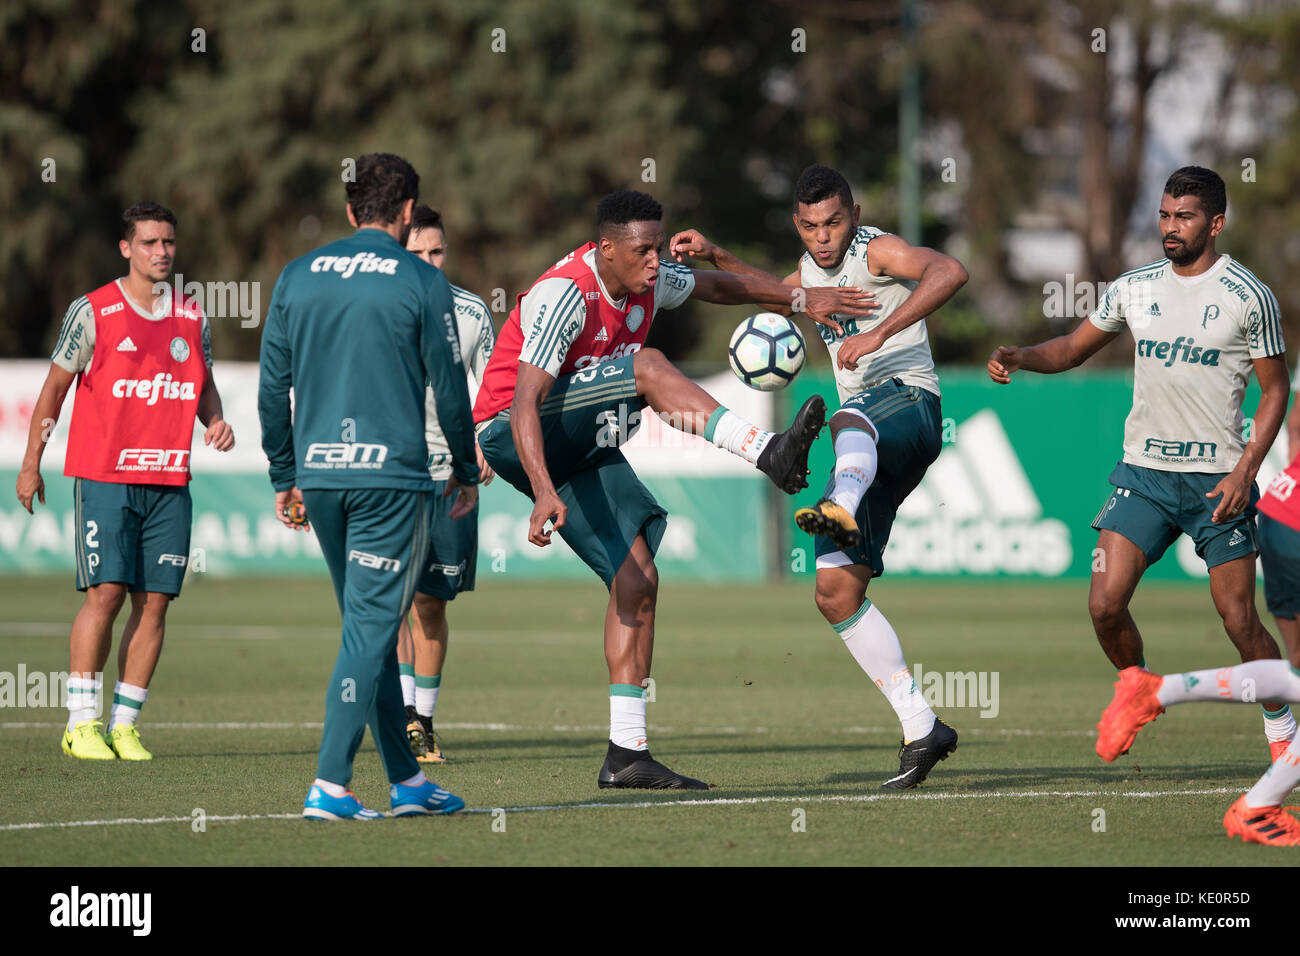 Sao Paulo, Brazil. 17th Oct, 2017. Colombian soccer player Yerry Mina (C), who has a preliminary agreement with - Stock Image